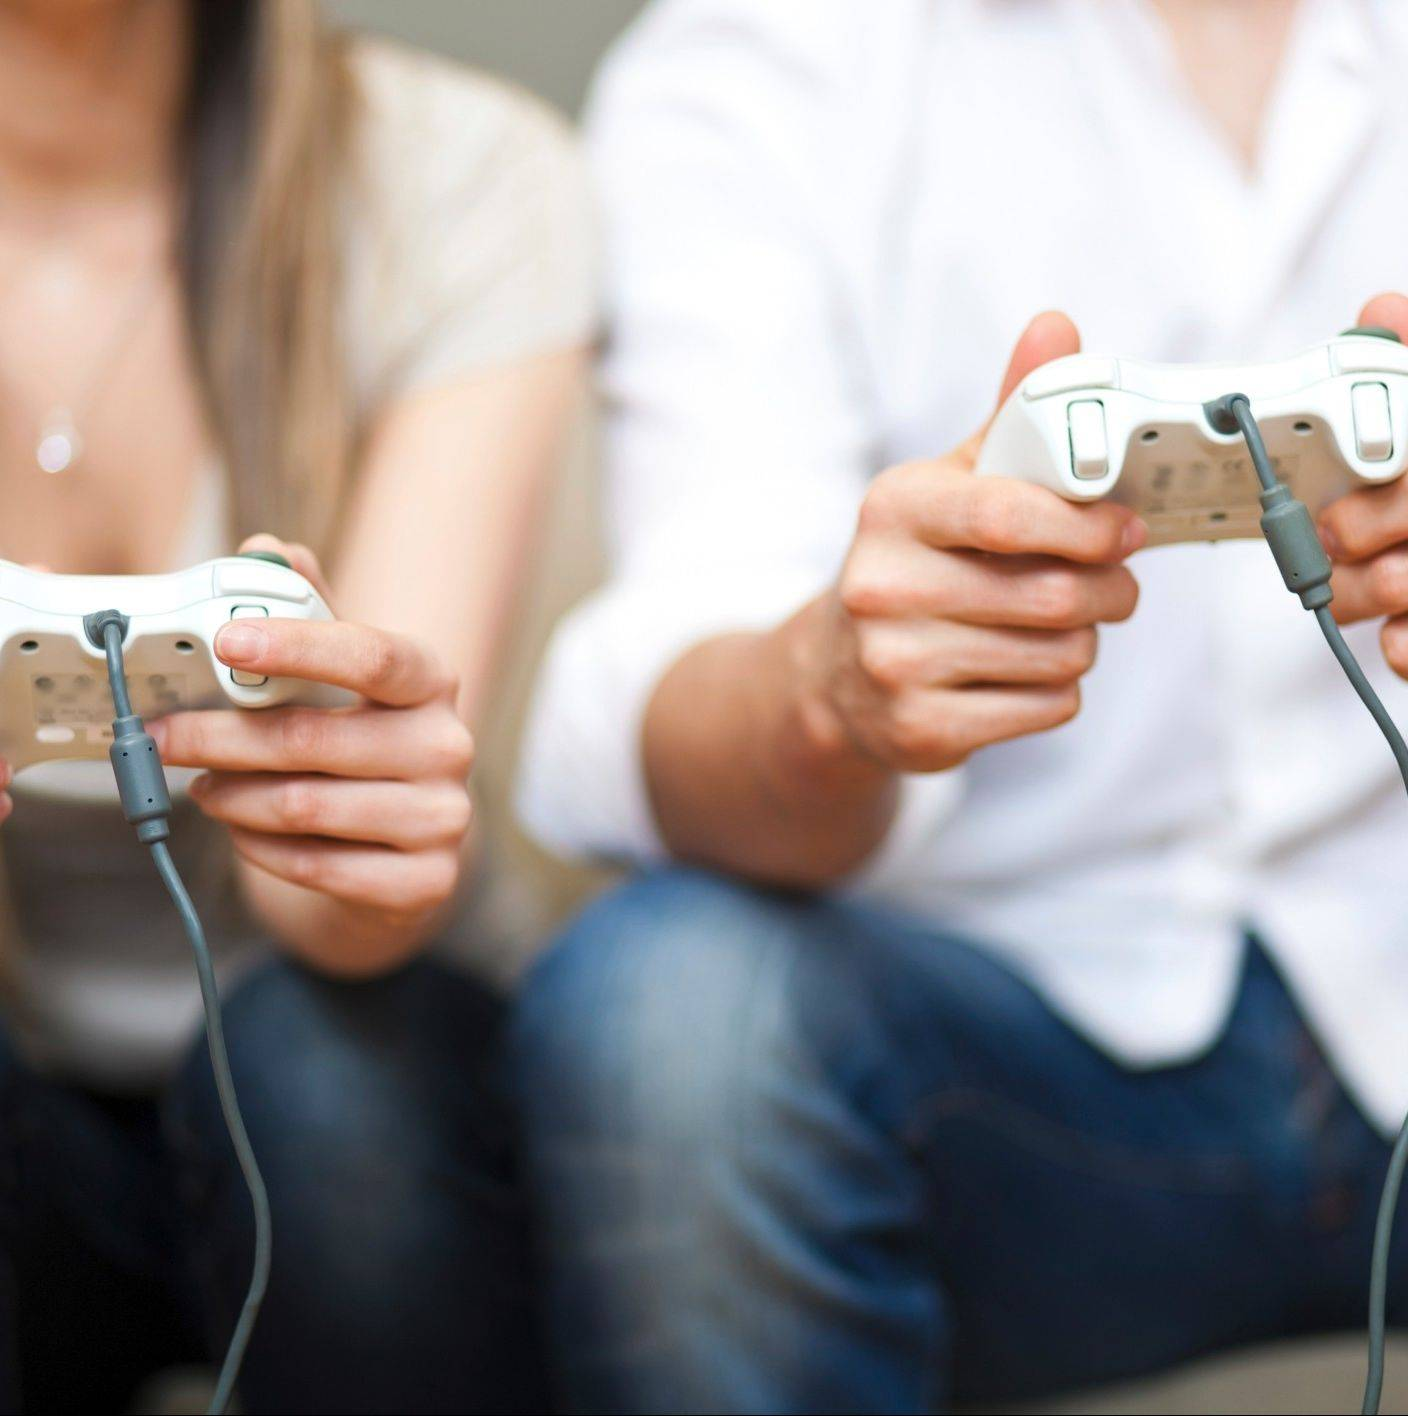 Adults can engage in some mental exercise by playing video games regularly.